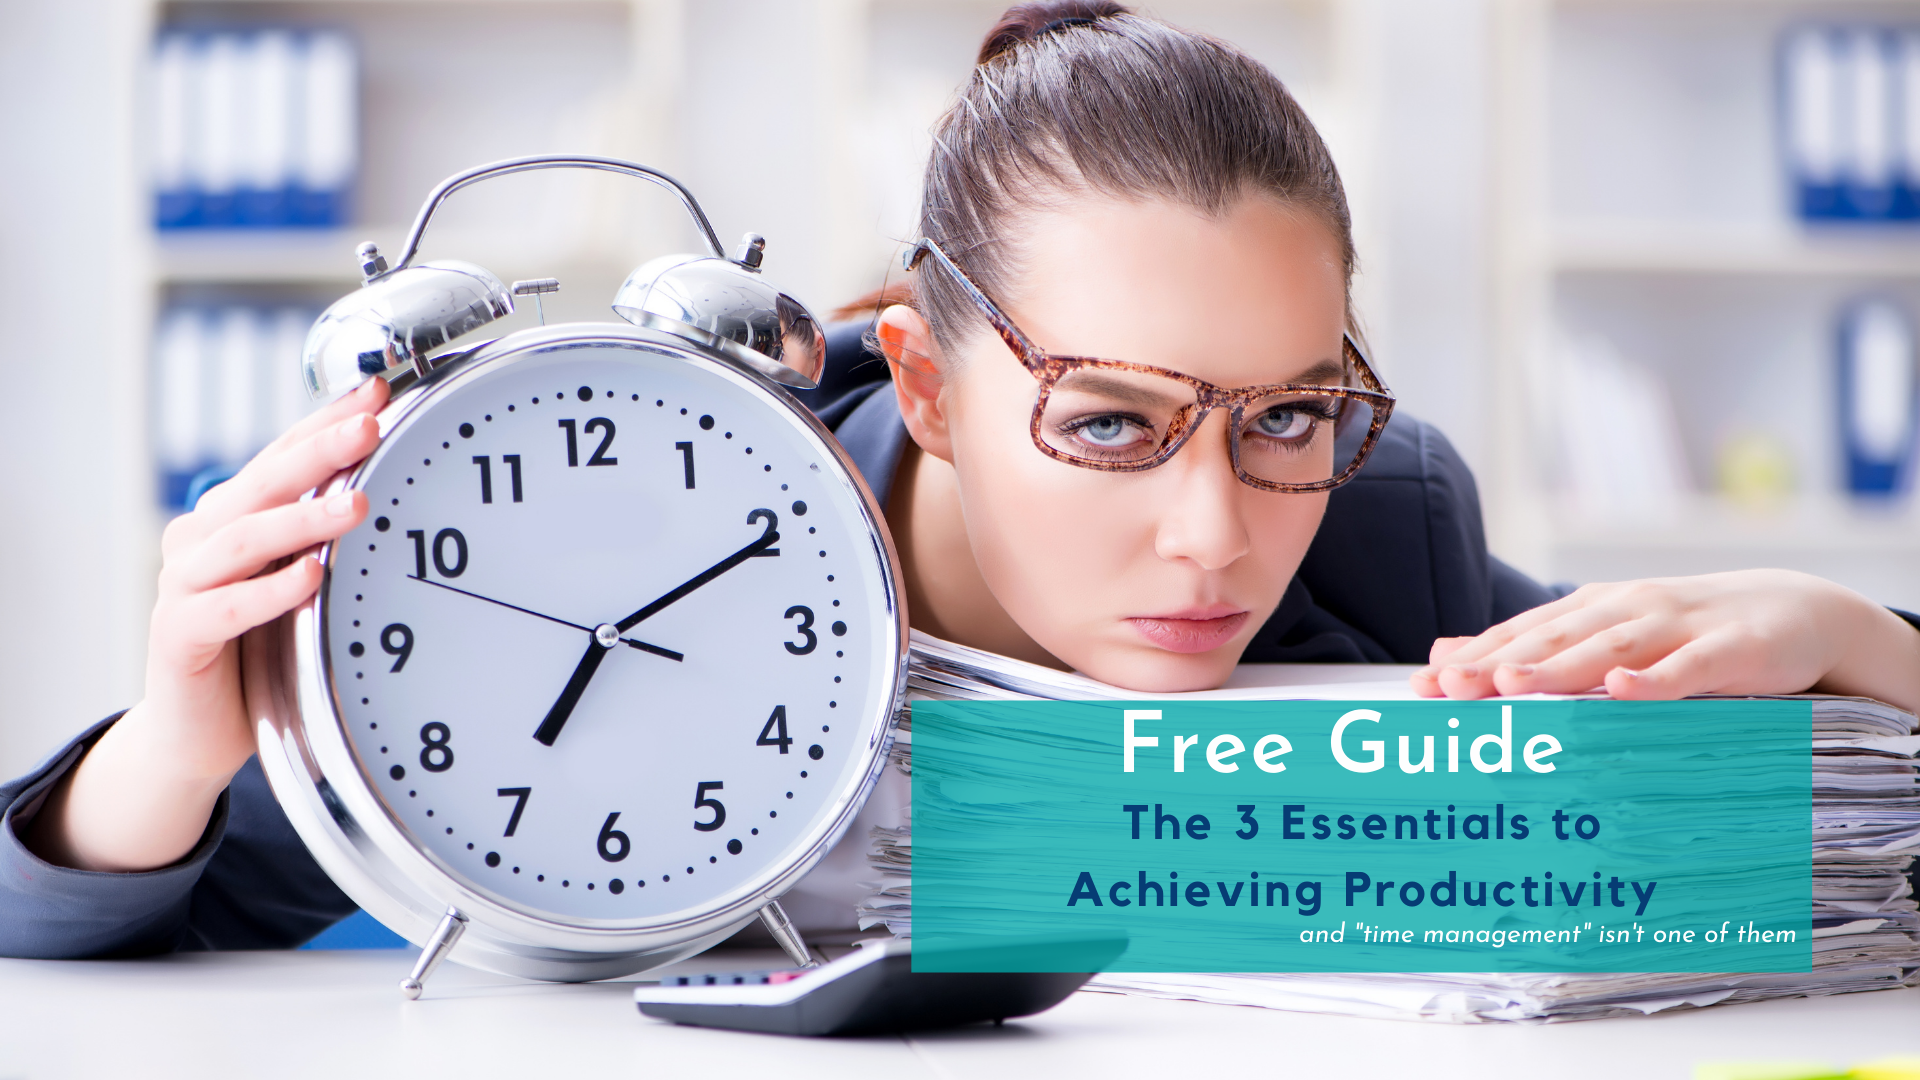 _Copy of Free guide